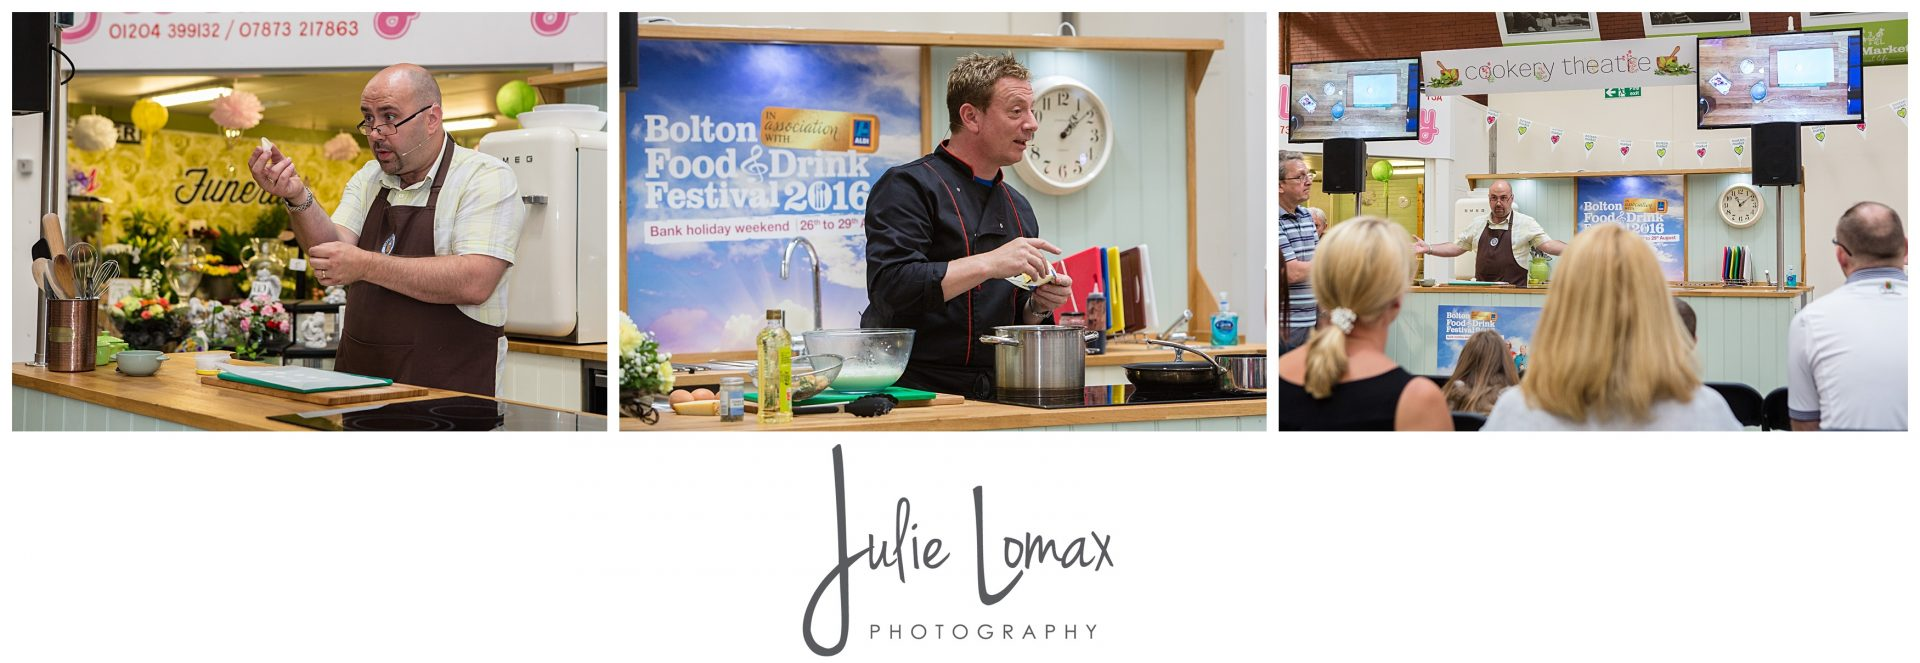 Bolton Food and Drinks Festival_0003